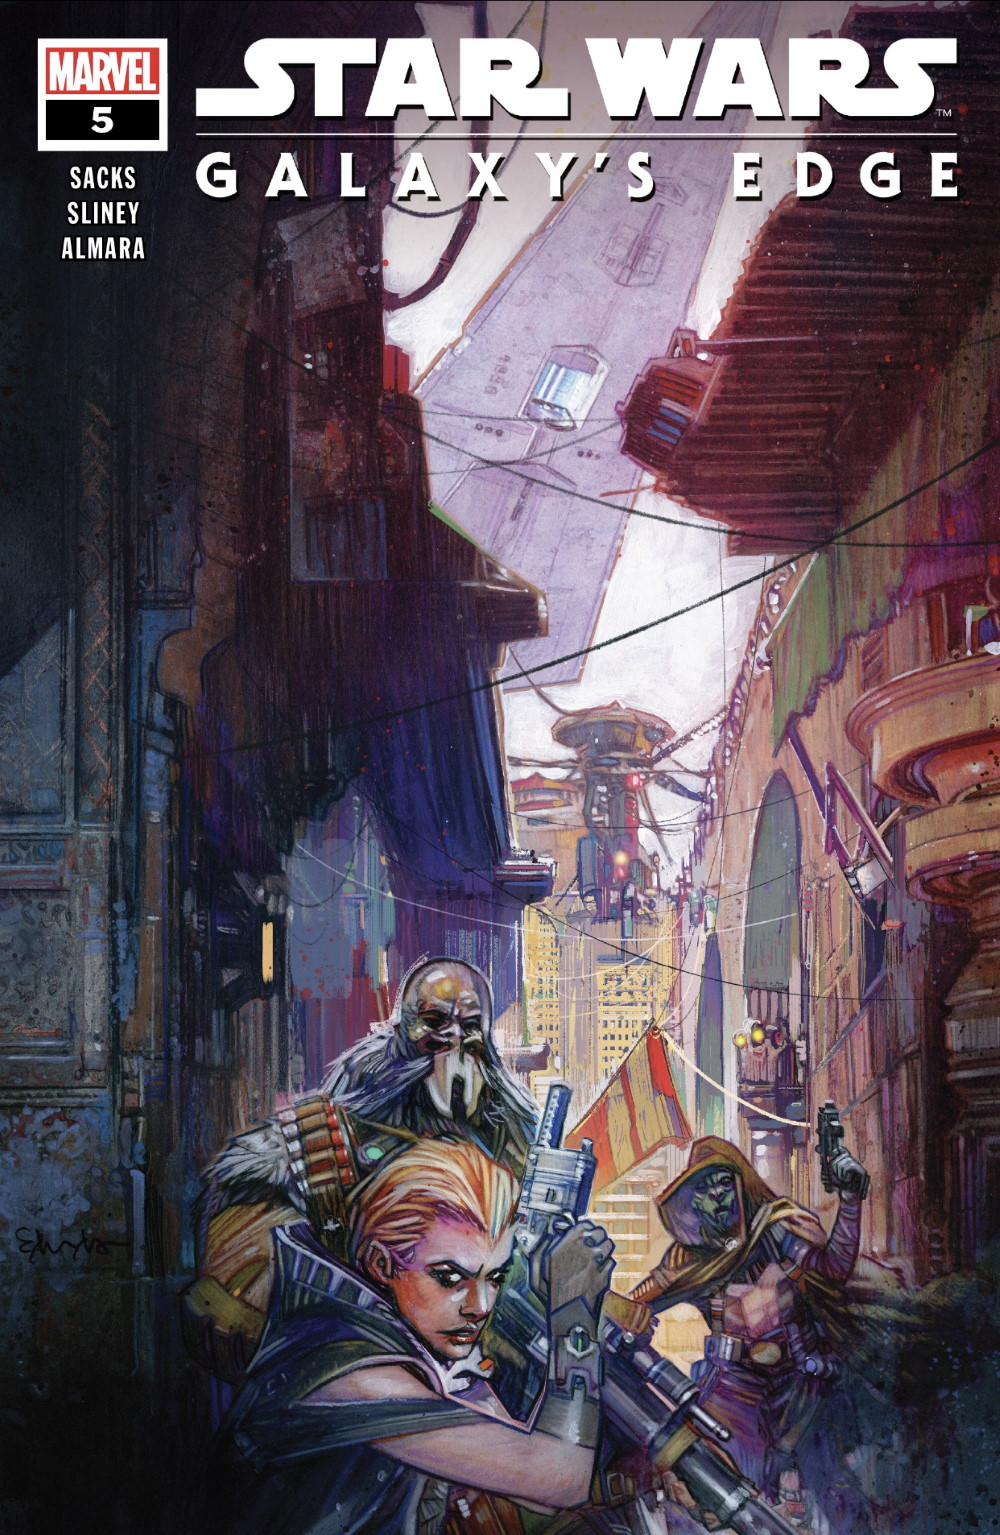 Star Wars Galaxy's Edge #5 Cover